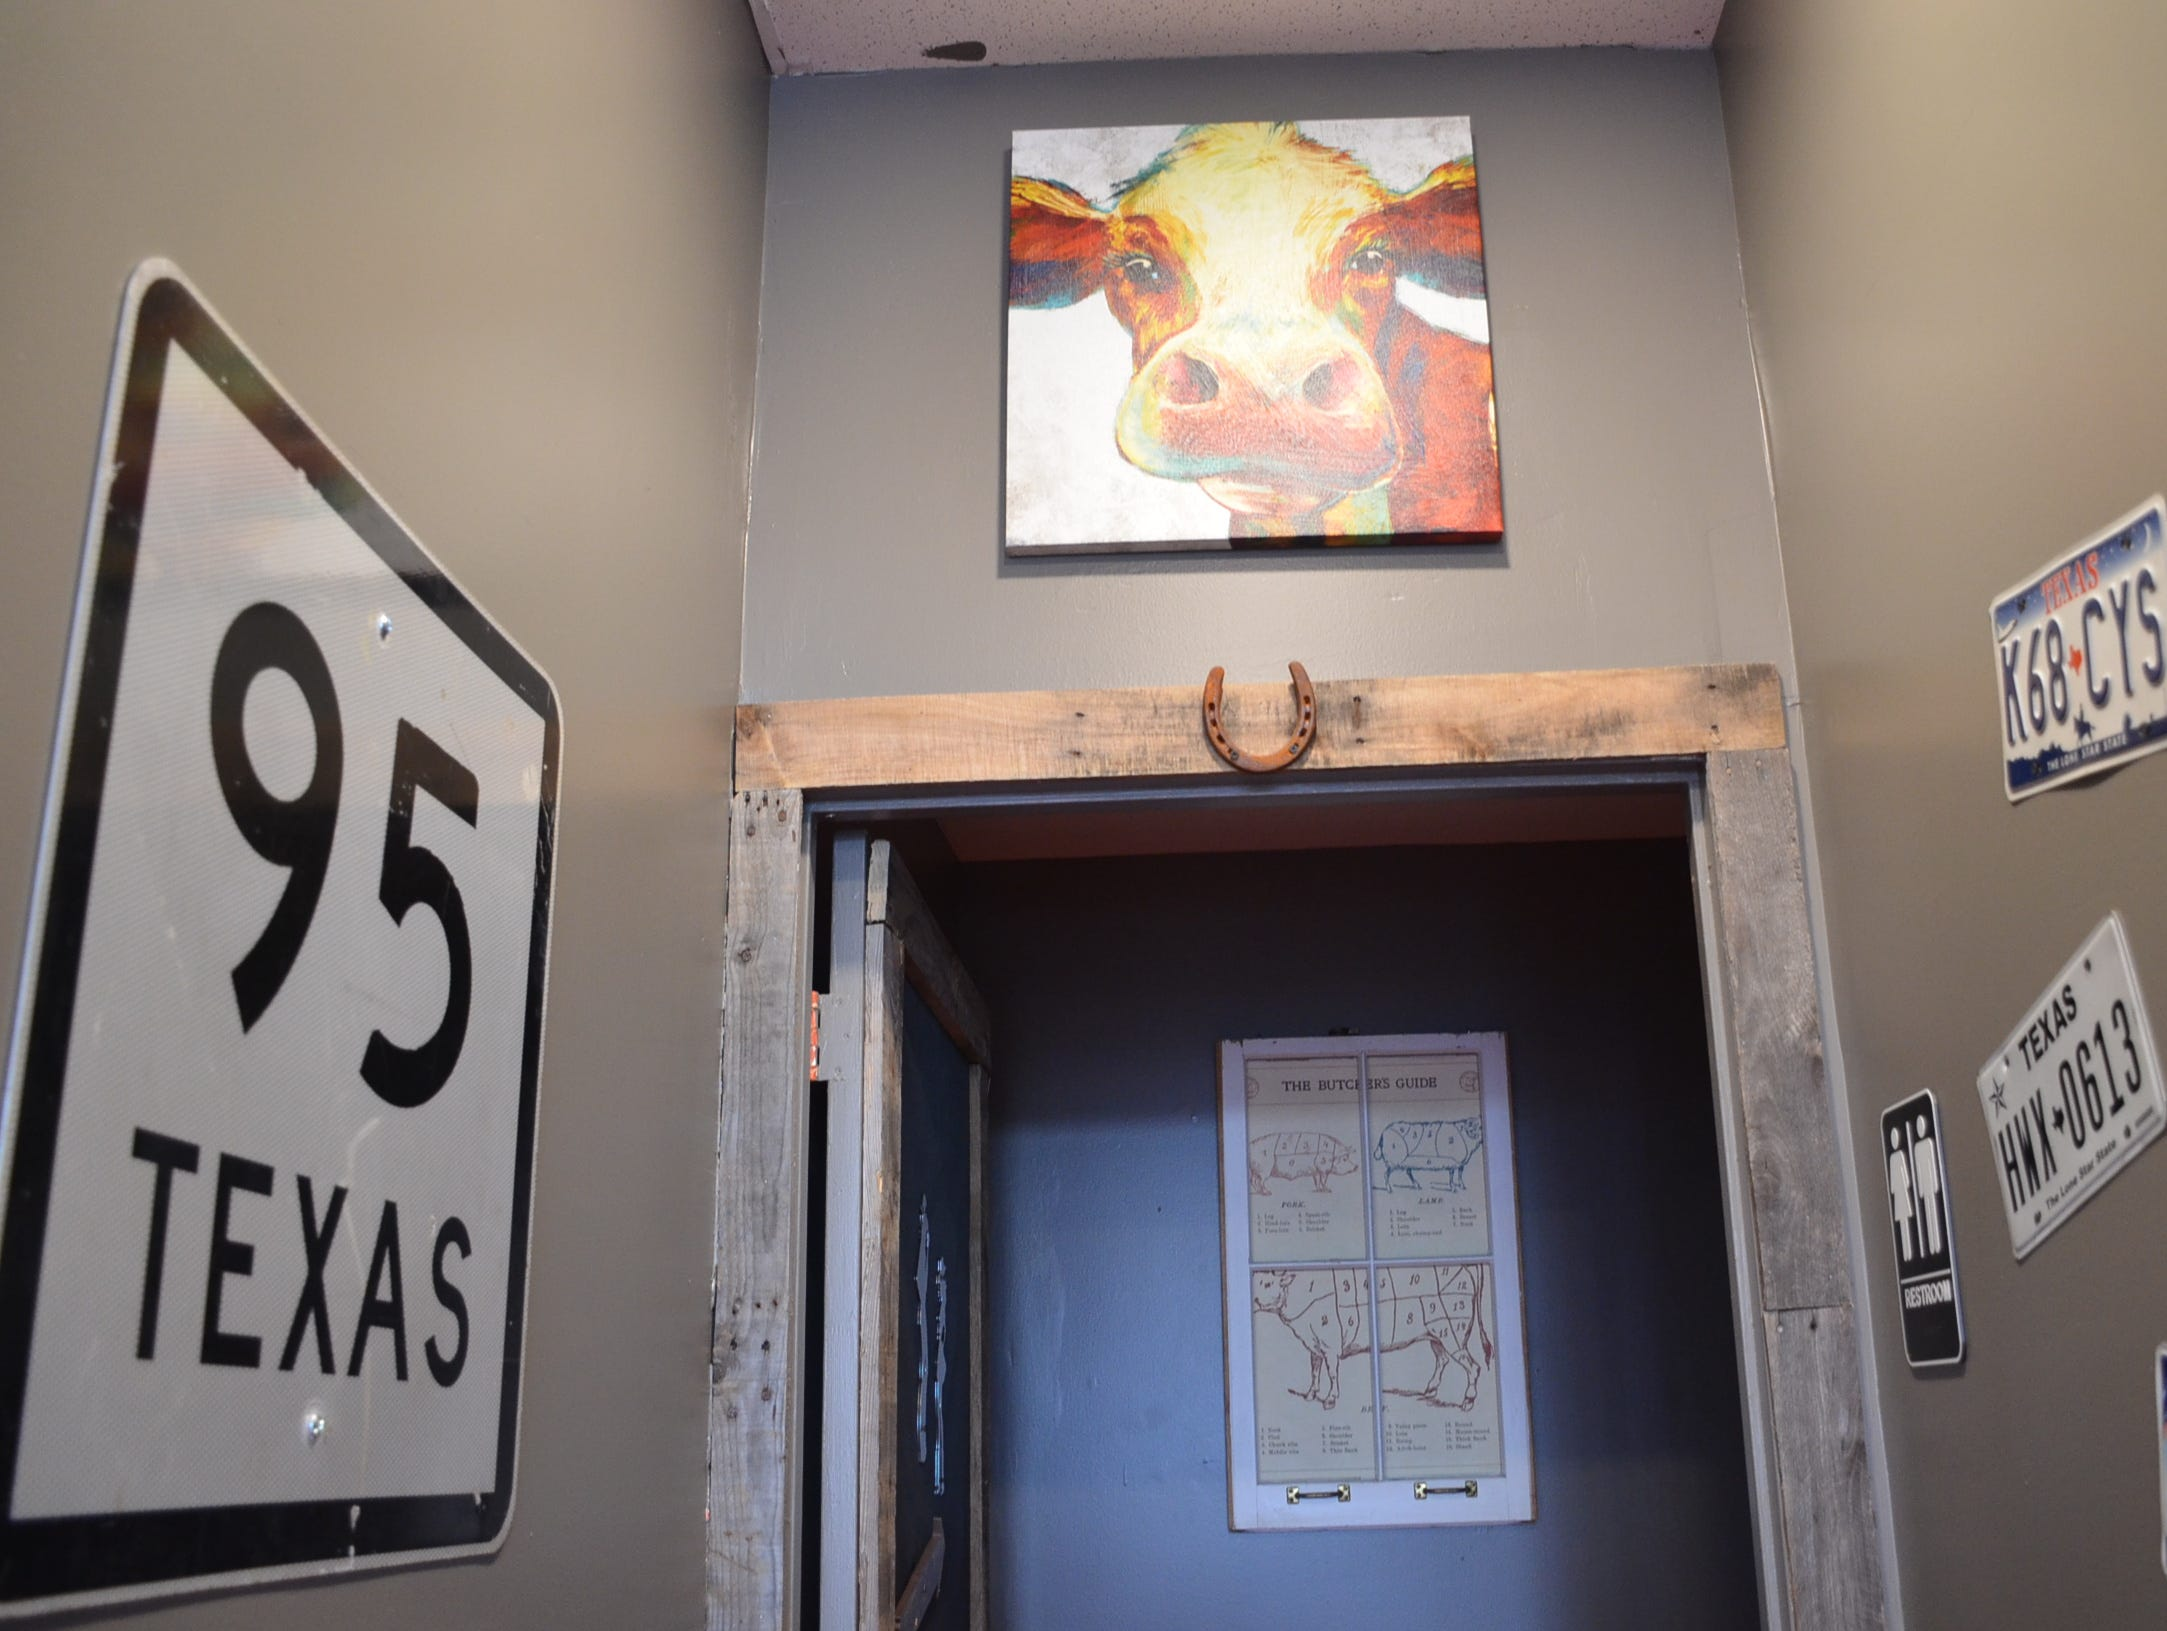 Texas barbecue restaurant The Meat Sweats BBQ brings a bit of home to their Hendersonville eatery.